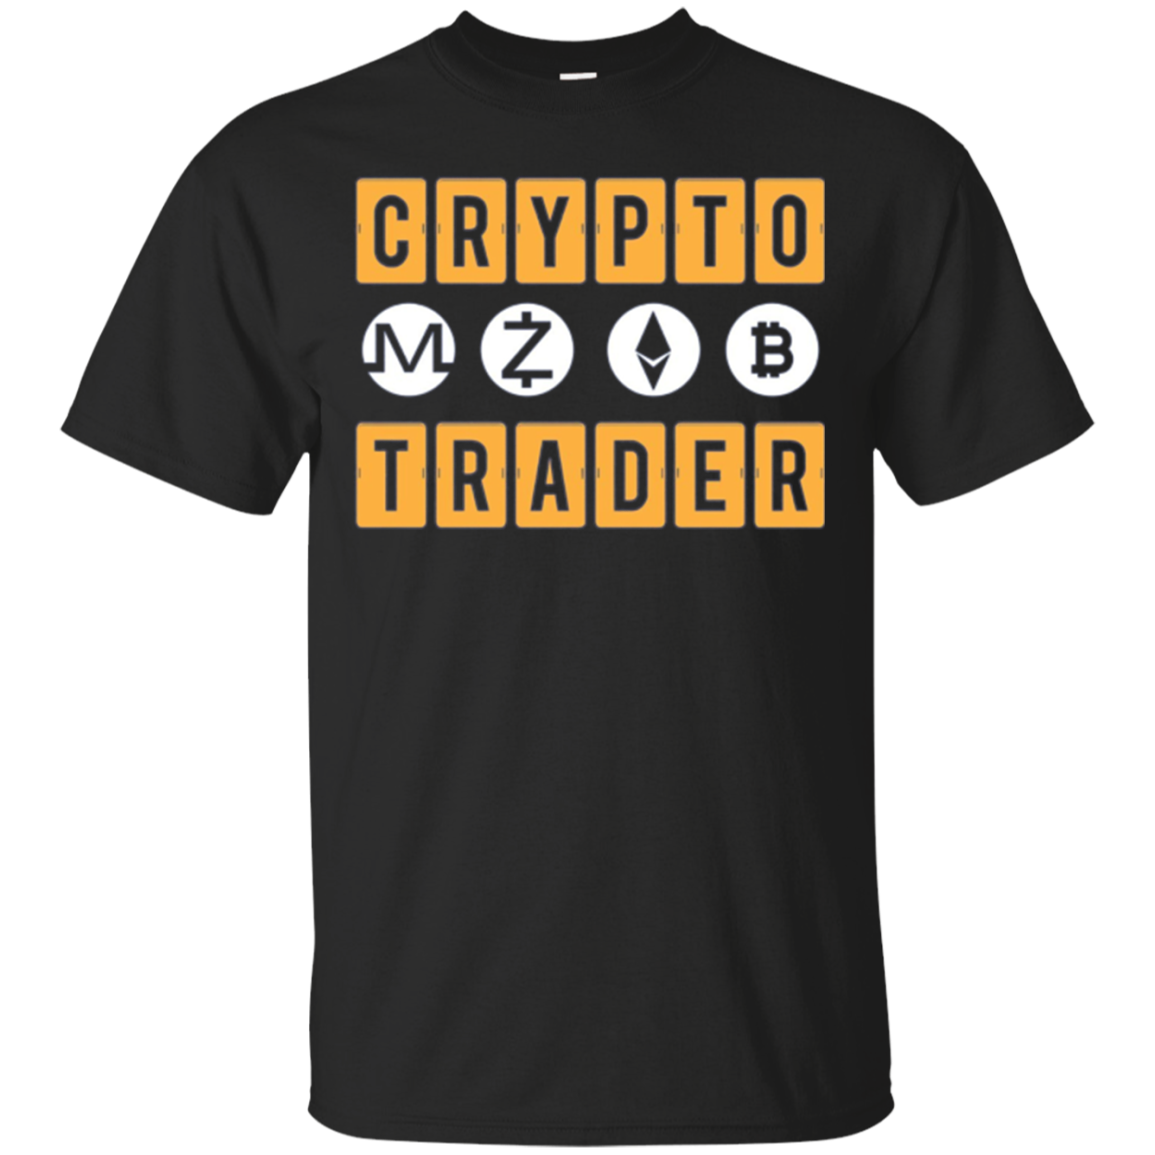 Crypto Trader Long Sleeve T-Shirt for Bitcoin Fans